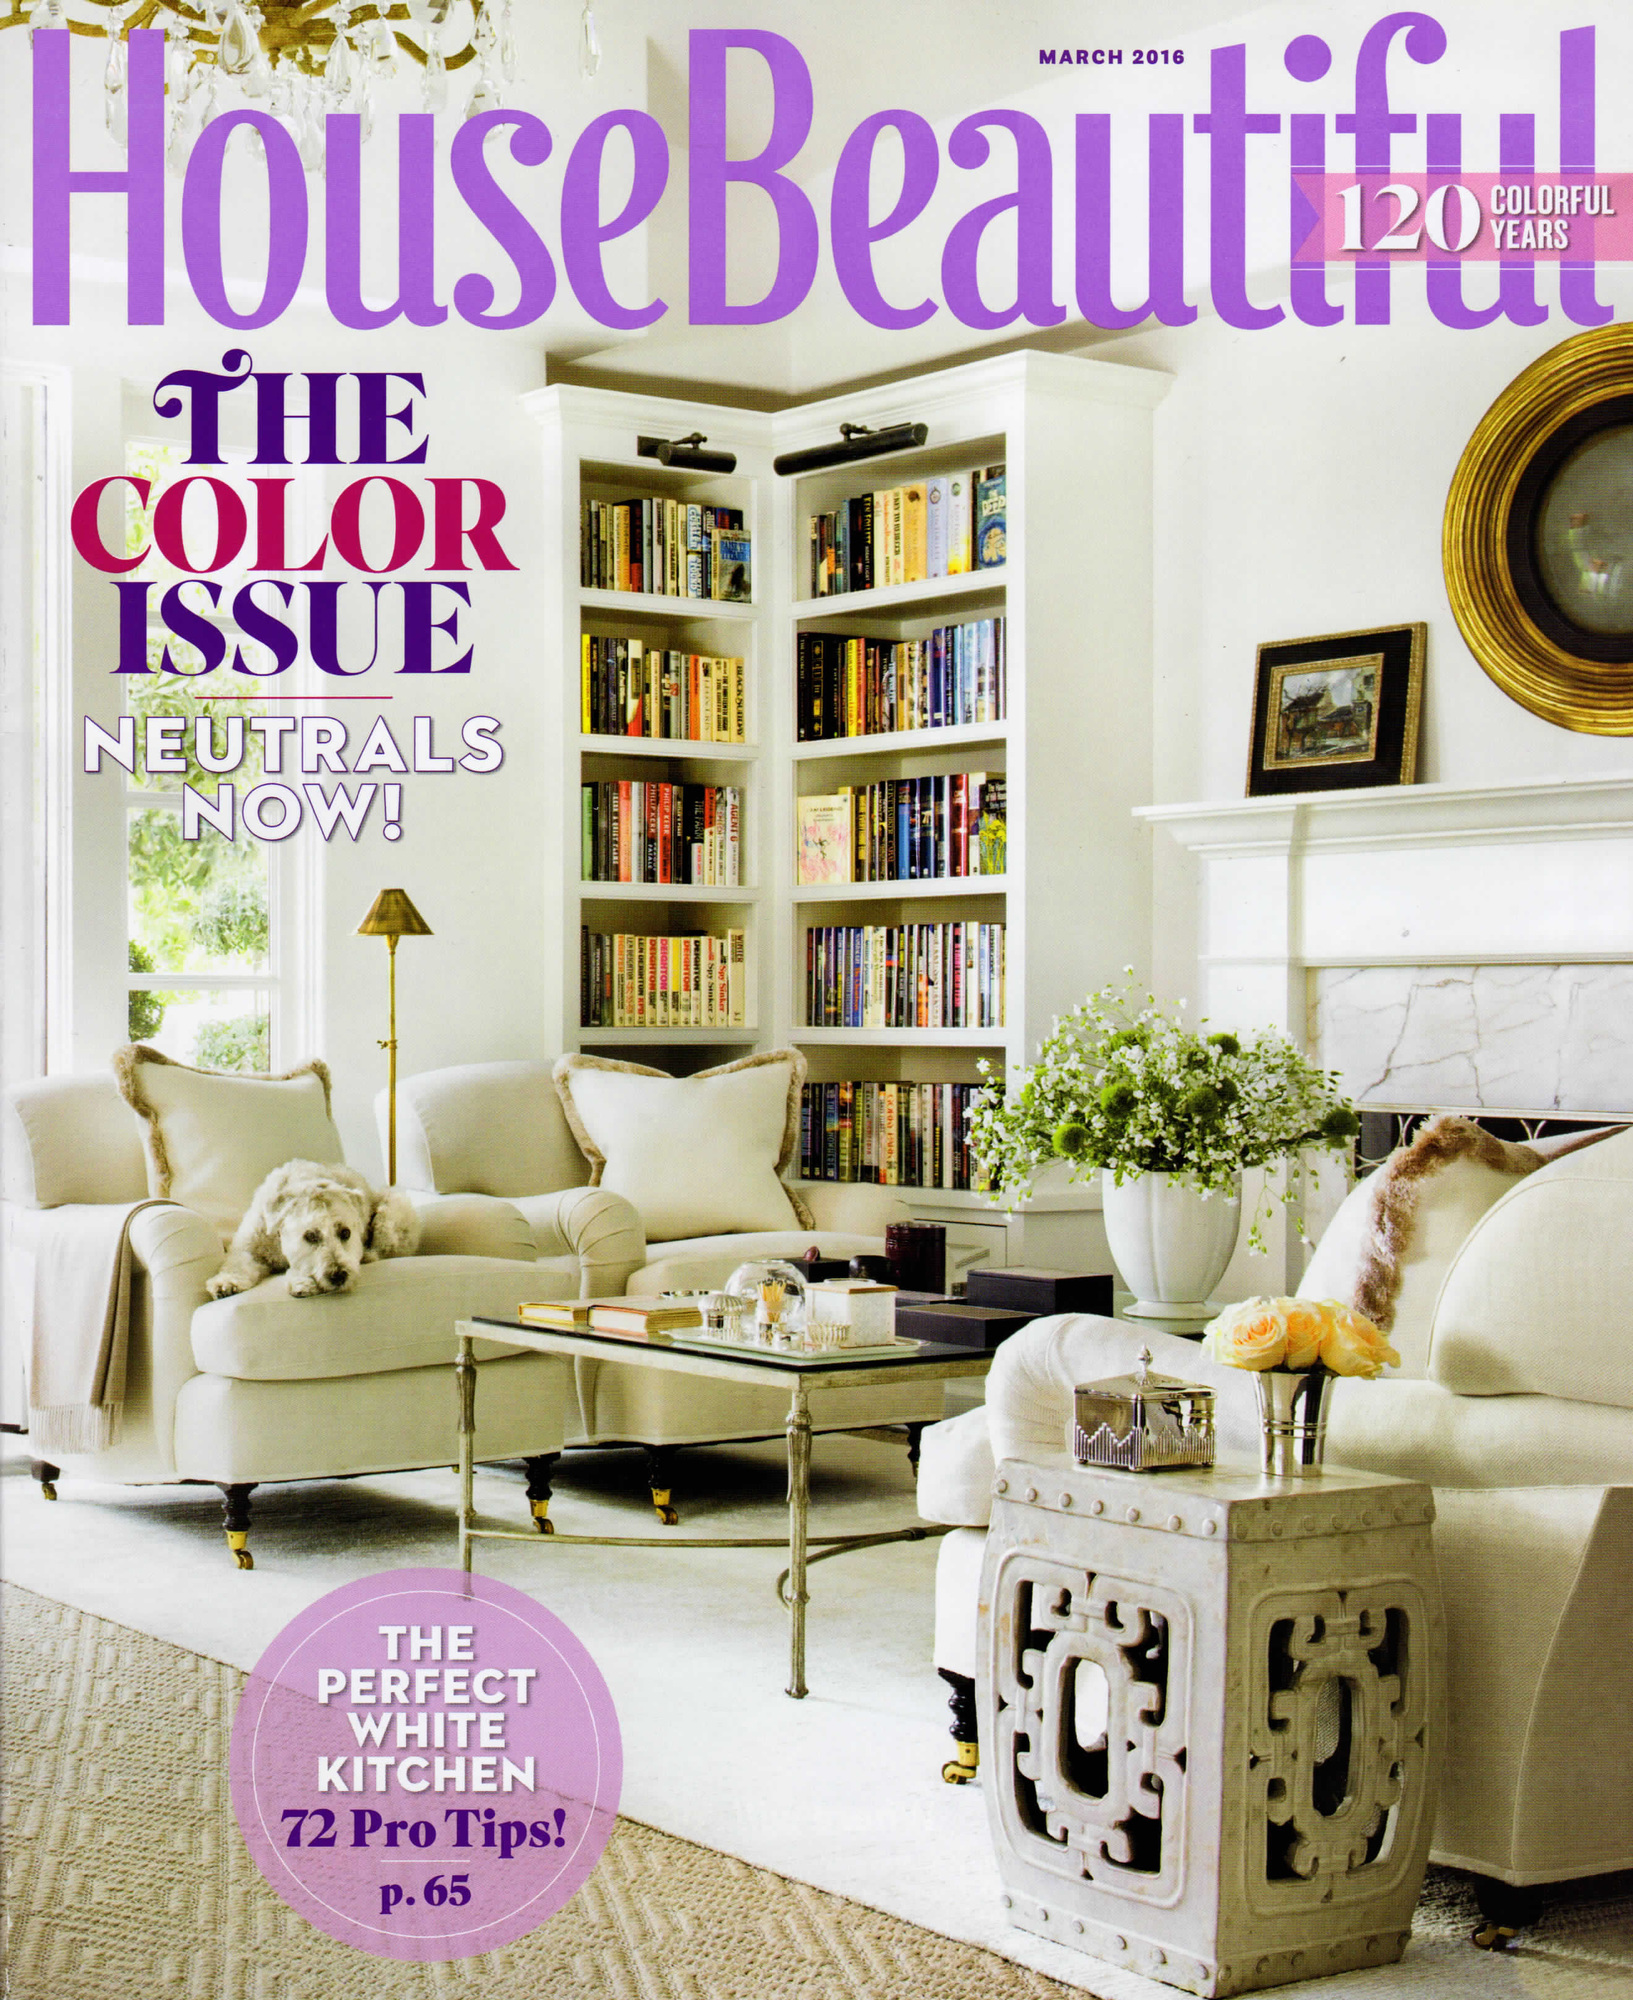 House Beautiful March 2016 Cover